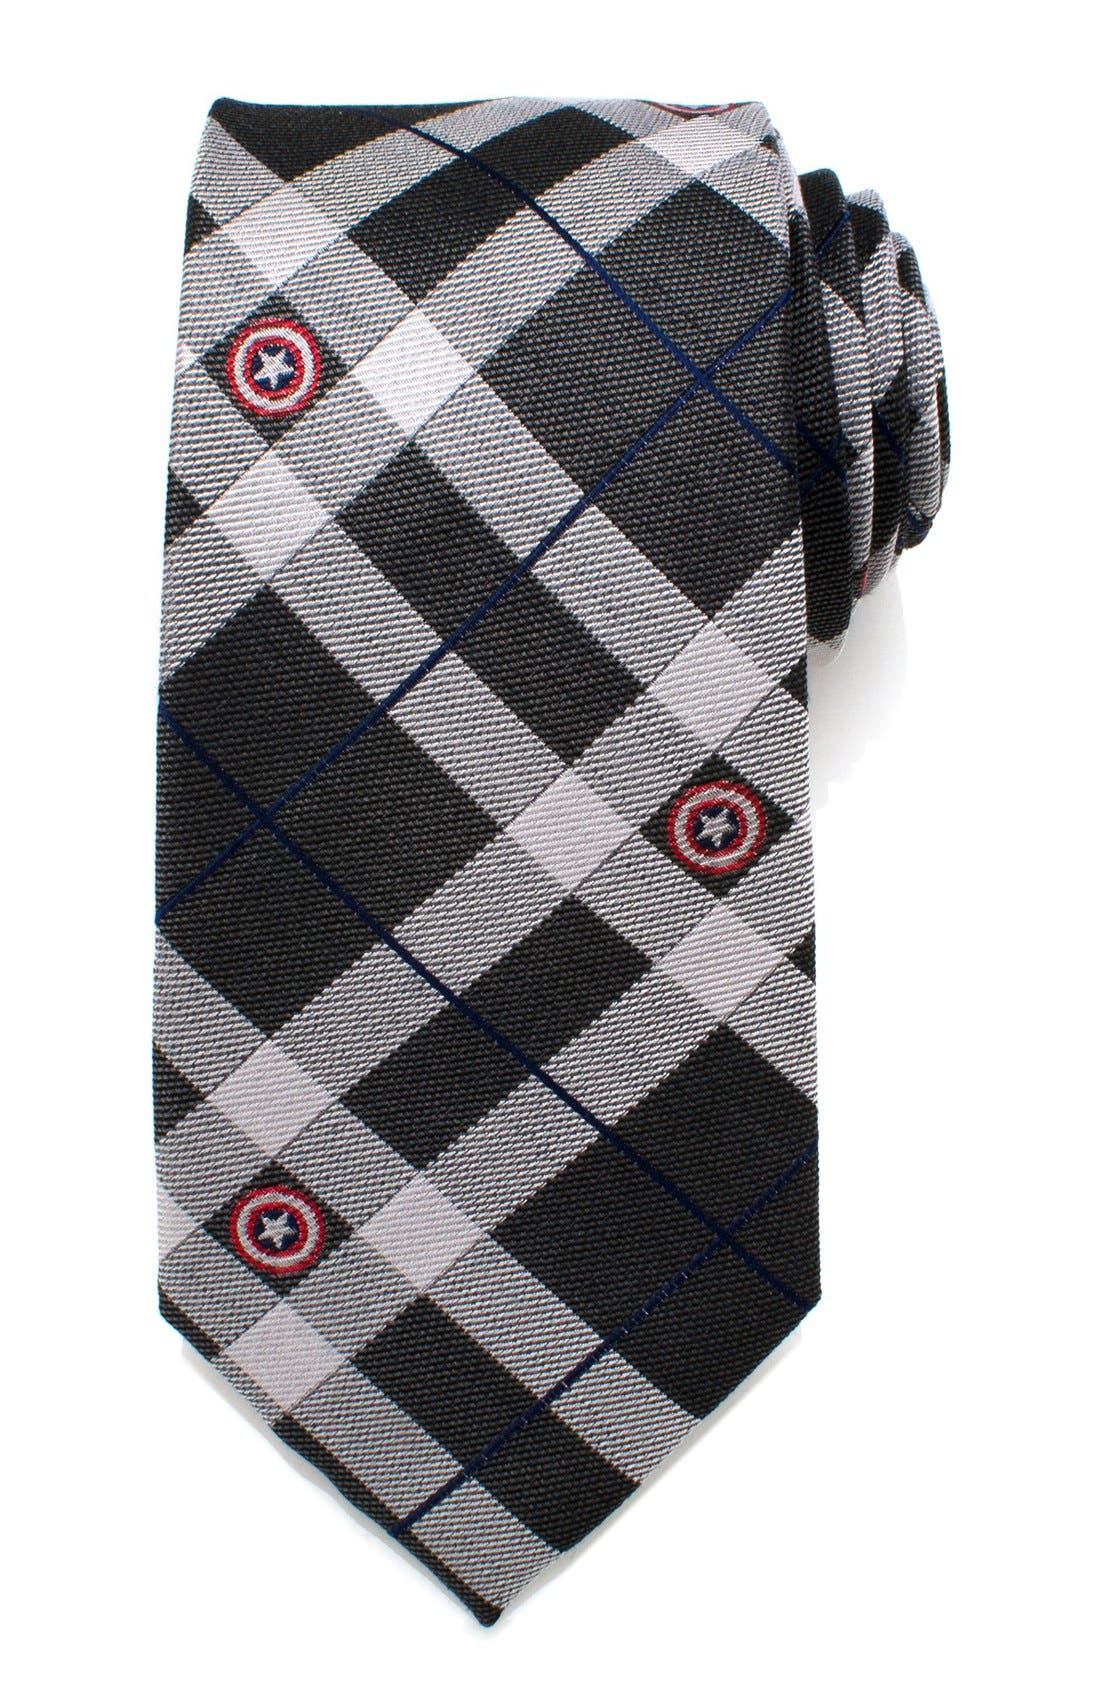 CUFFLINKS, INC. Captain America Silk Tie